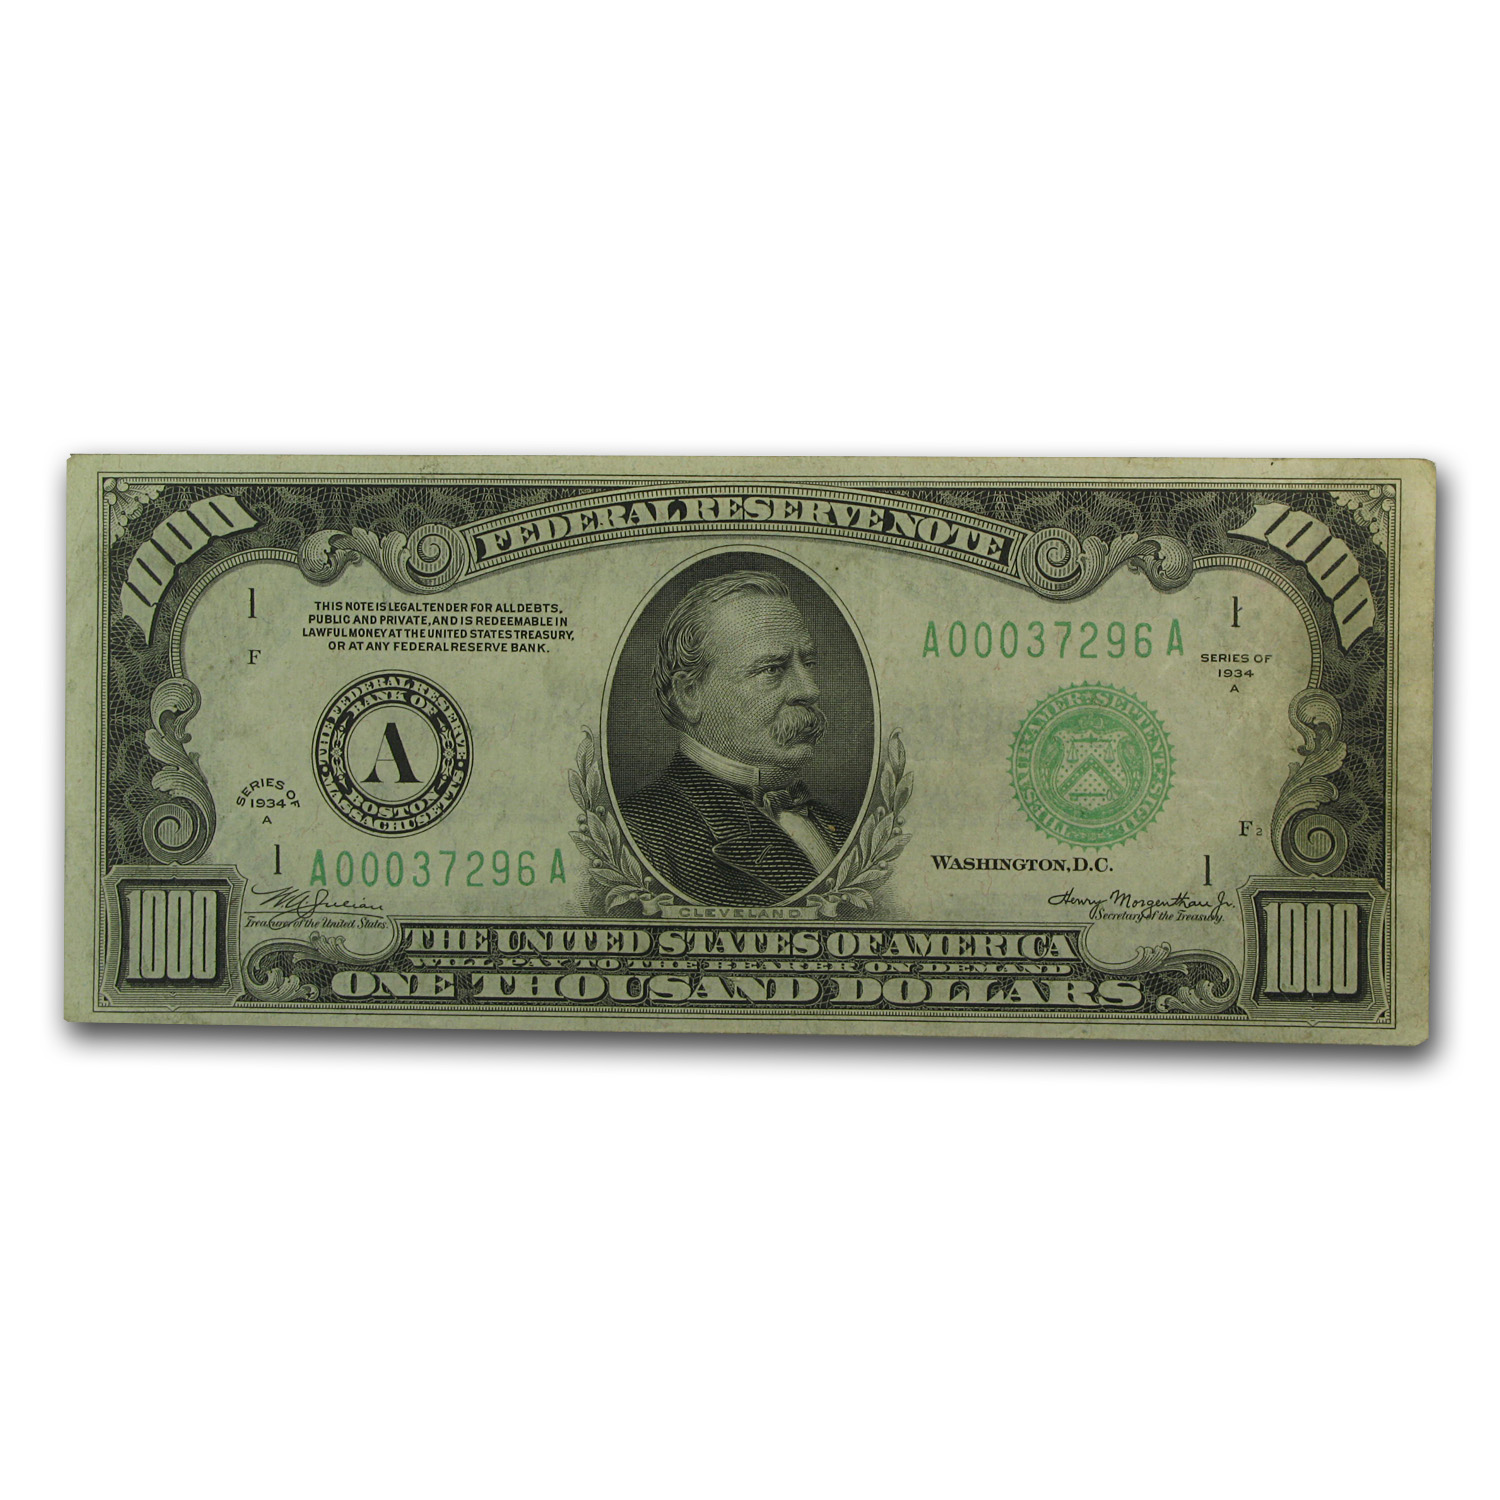 1934-A (A-Boston) $1,000 FRN (Very Fine + )